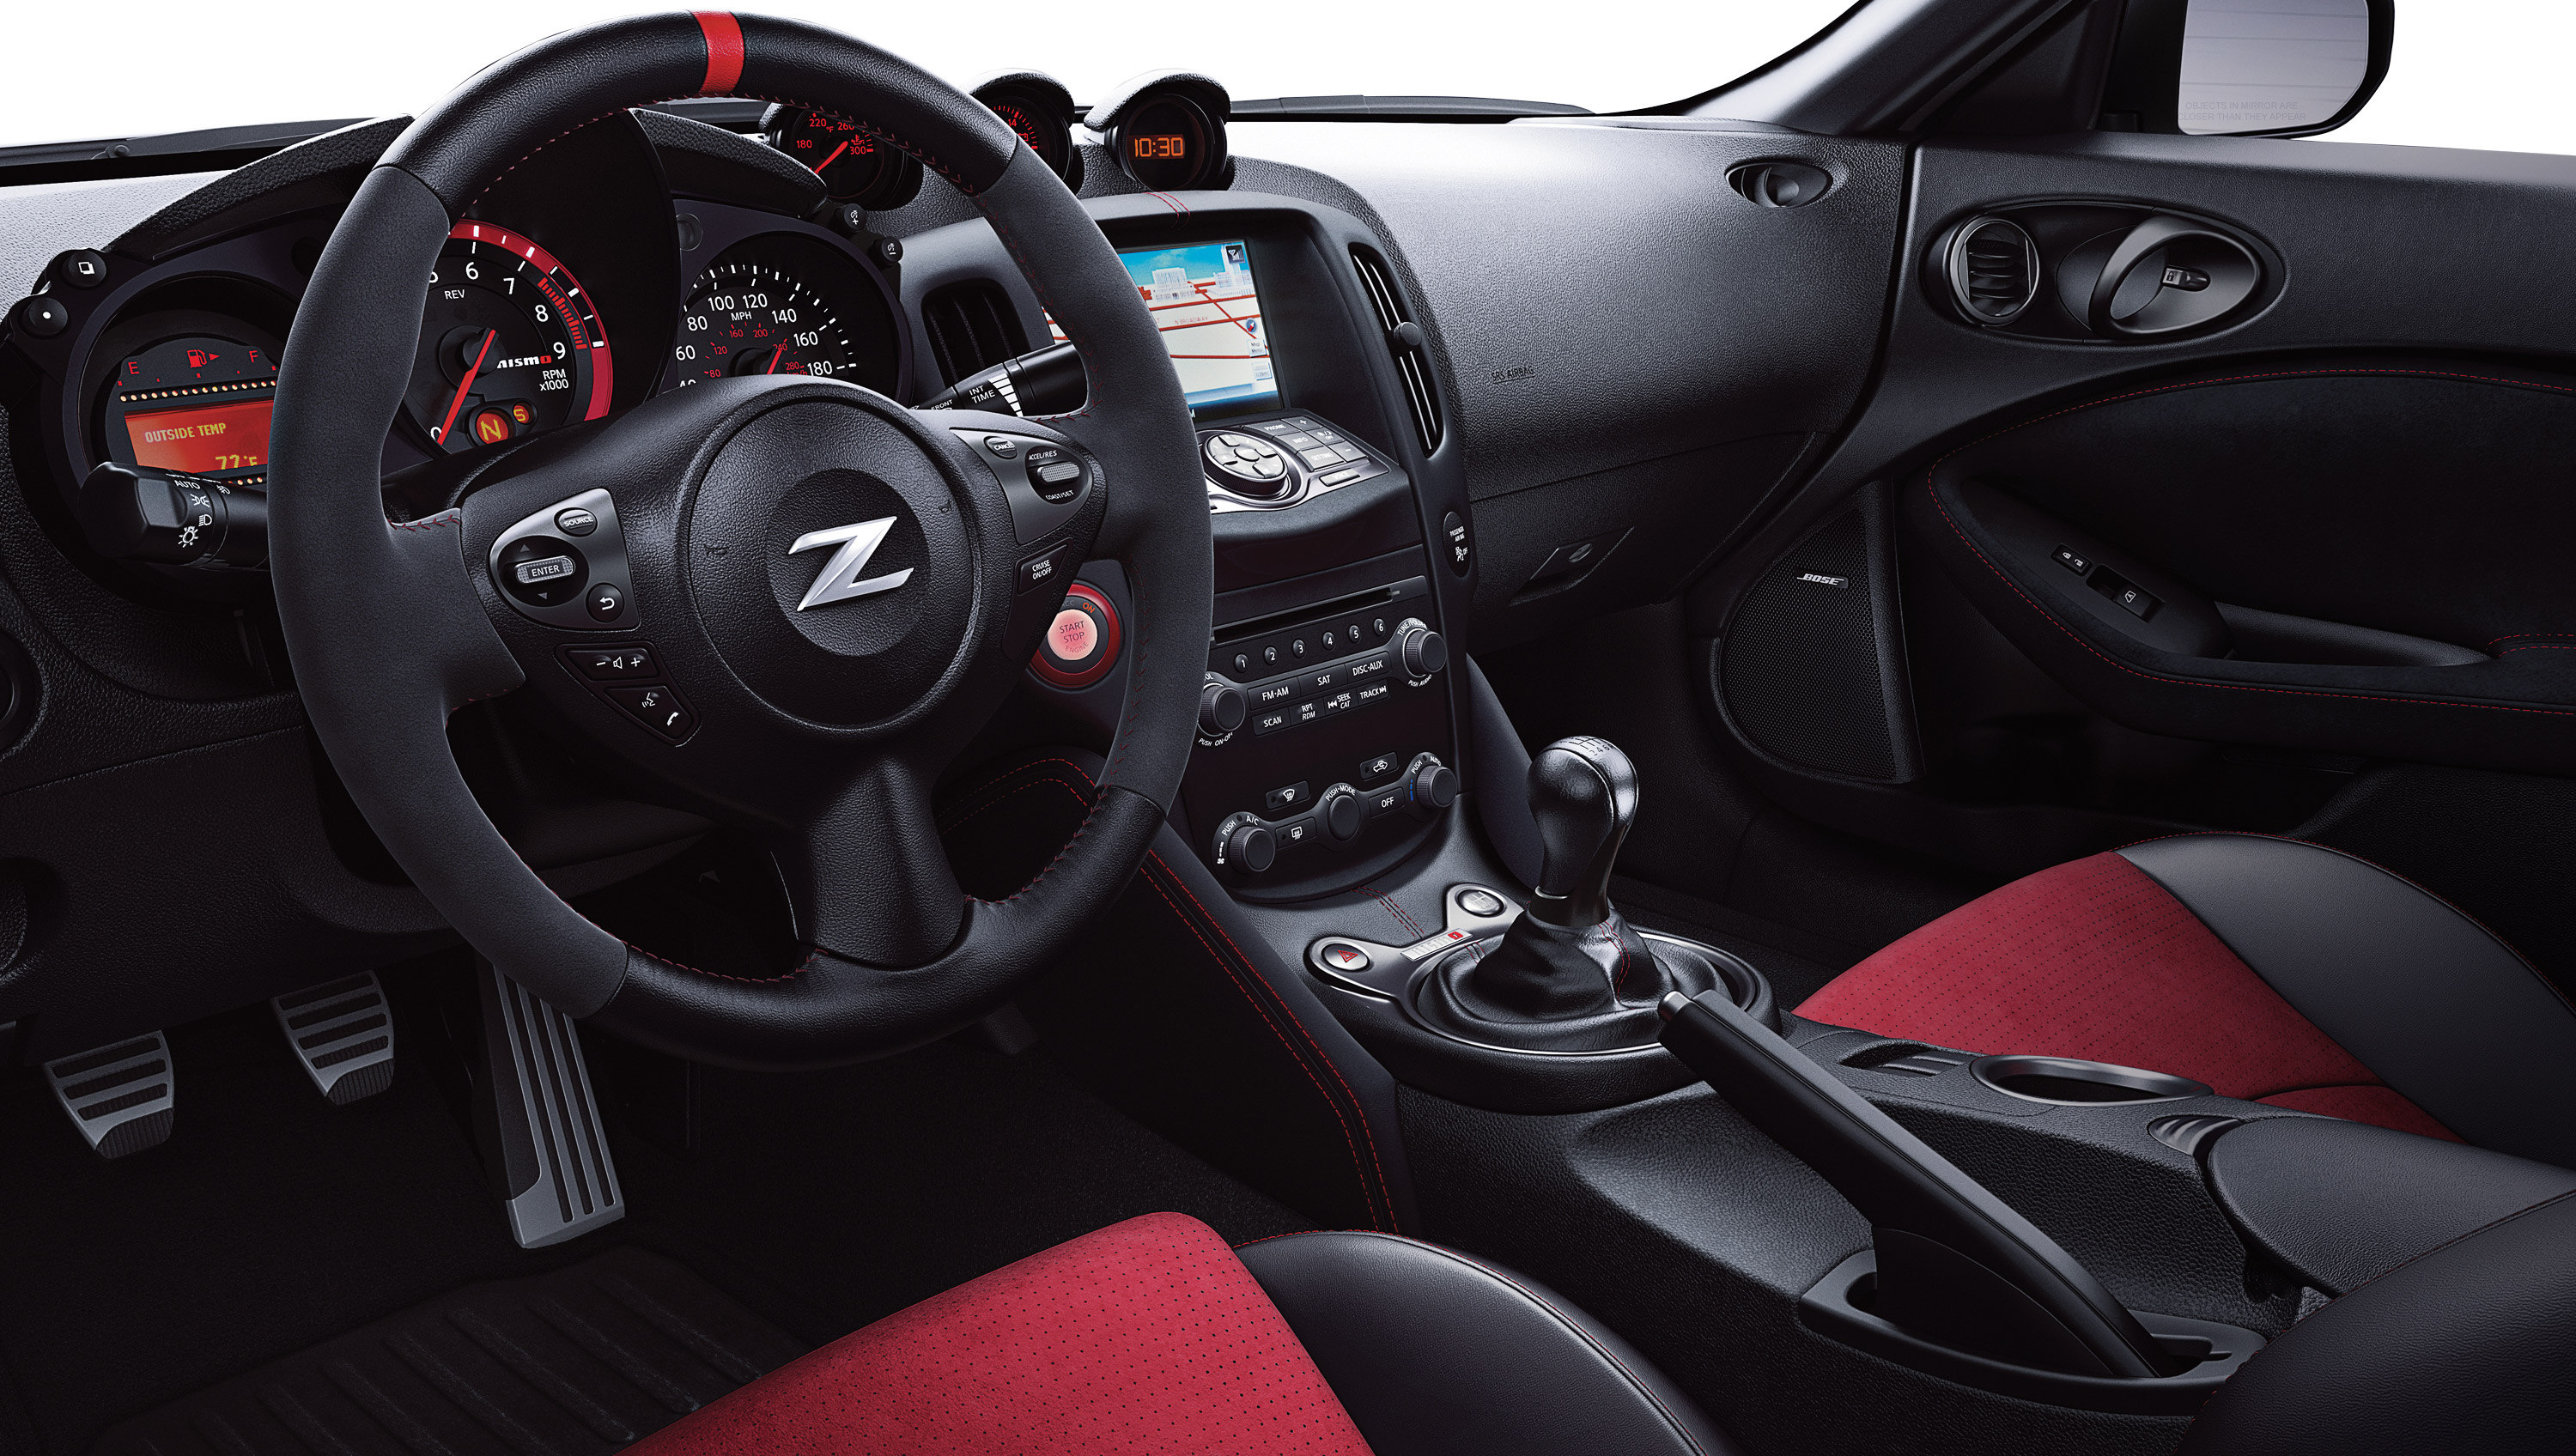 New 370z offers new nissan 370z interior features vanachro Image collections